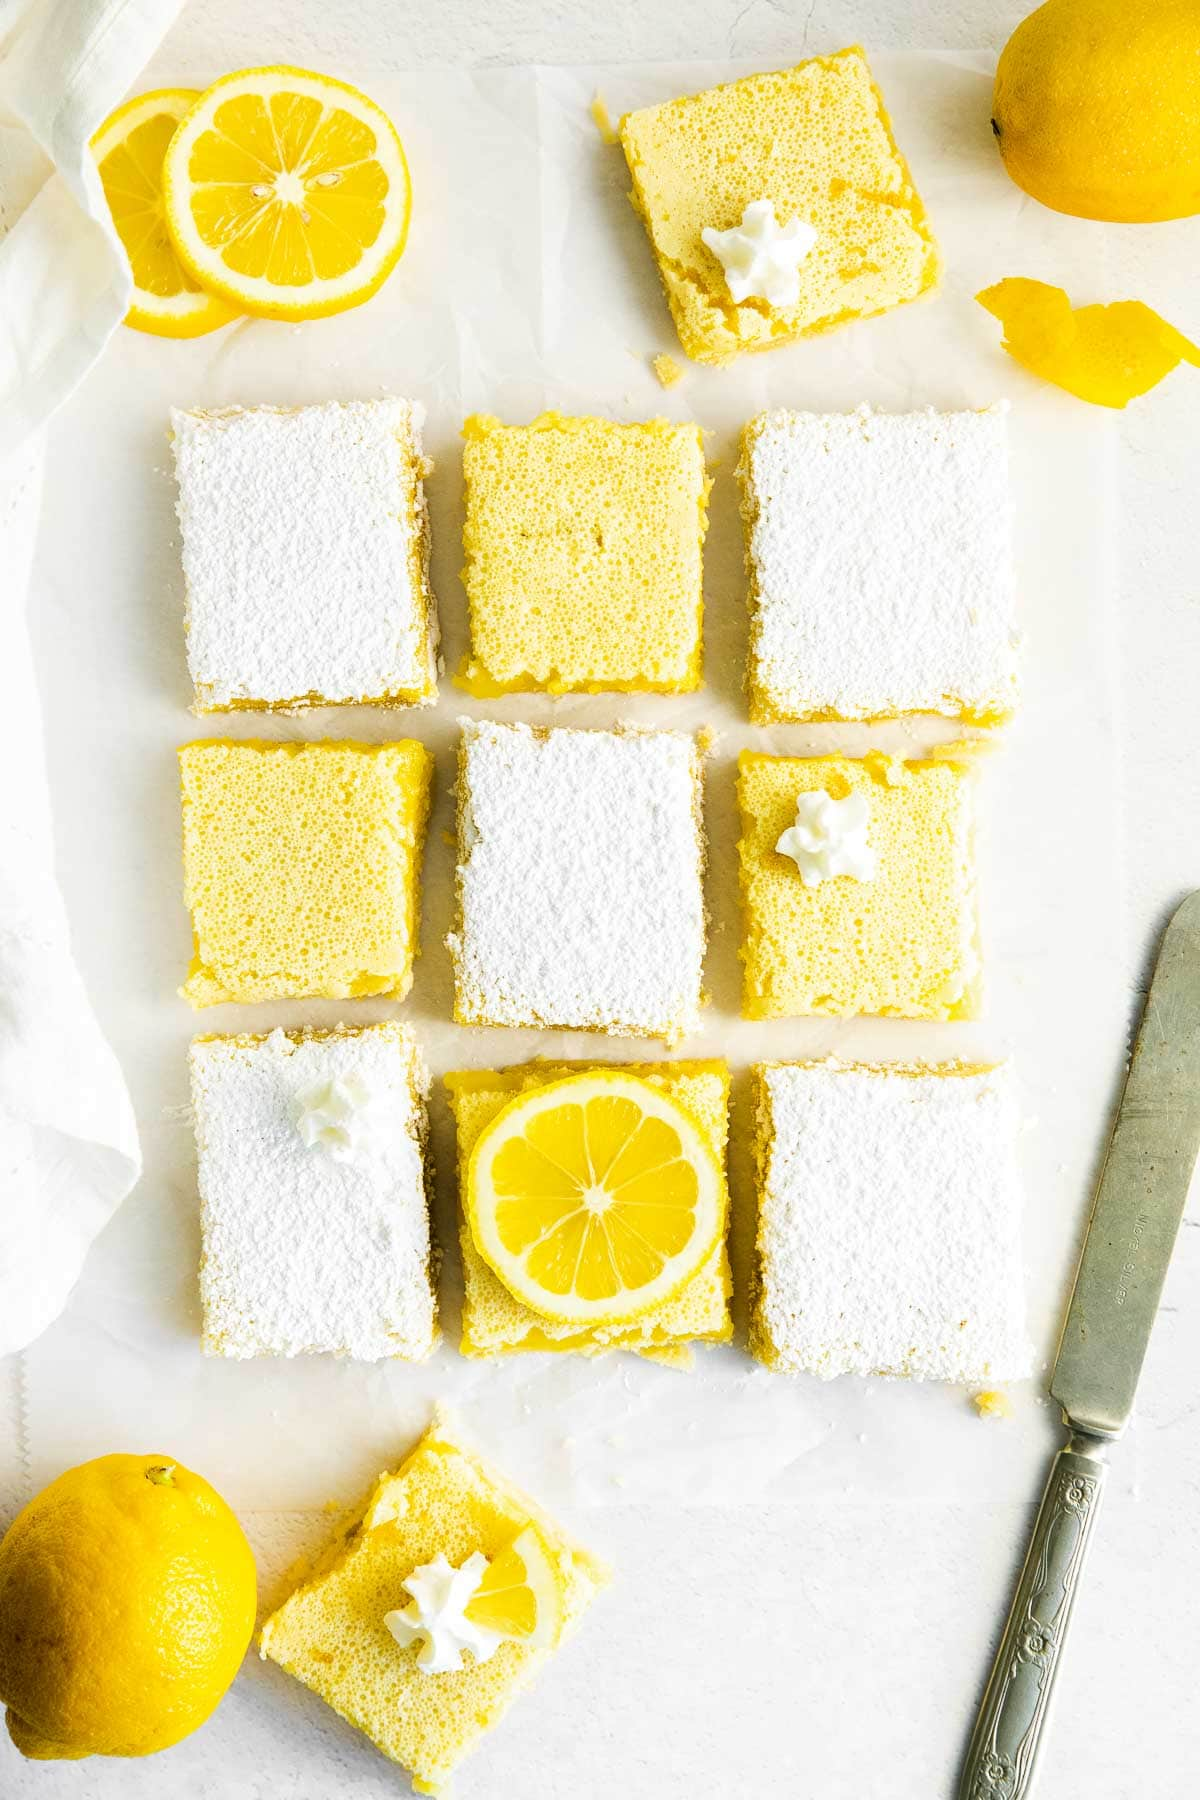 lemon bars on a white table cut into nine squares - some topped with powdered sugar and some topped with lemon slices